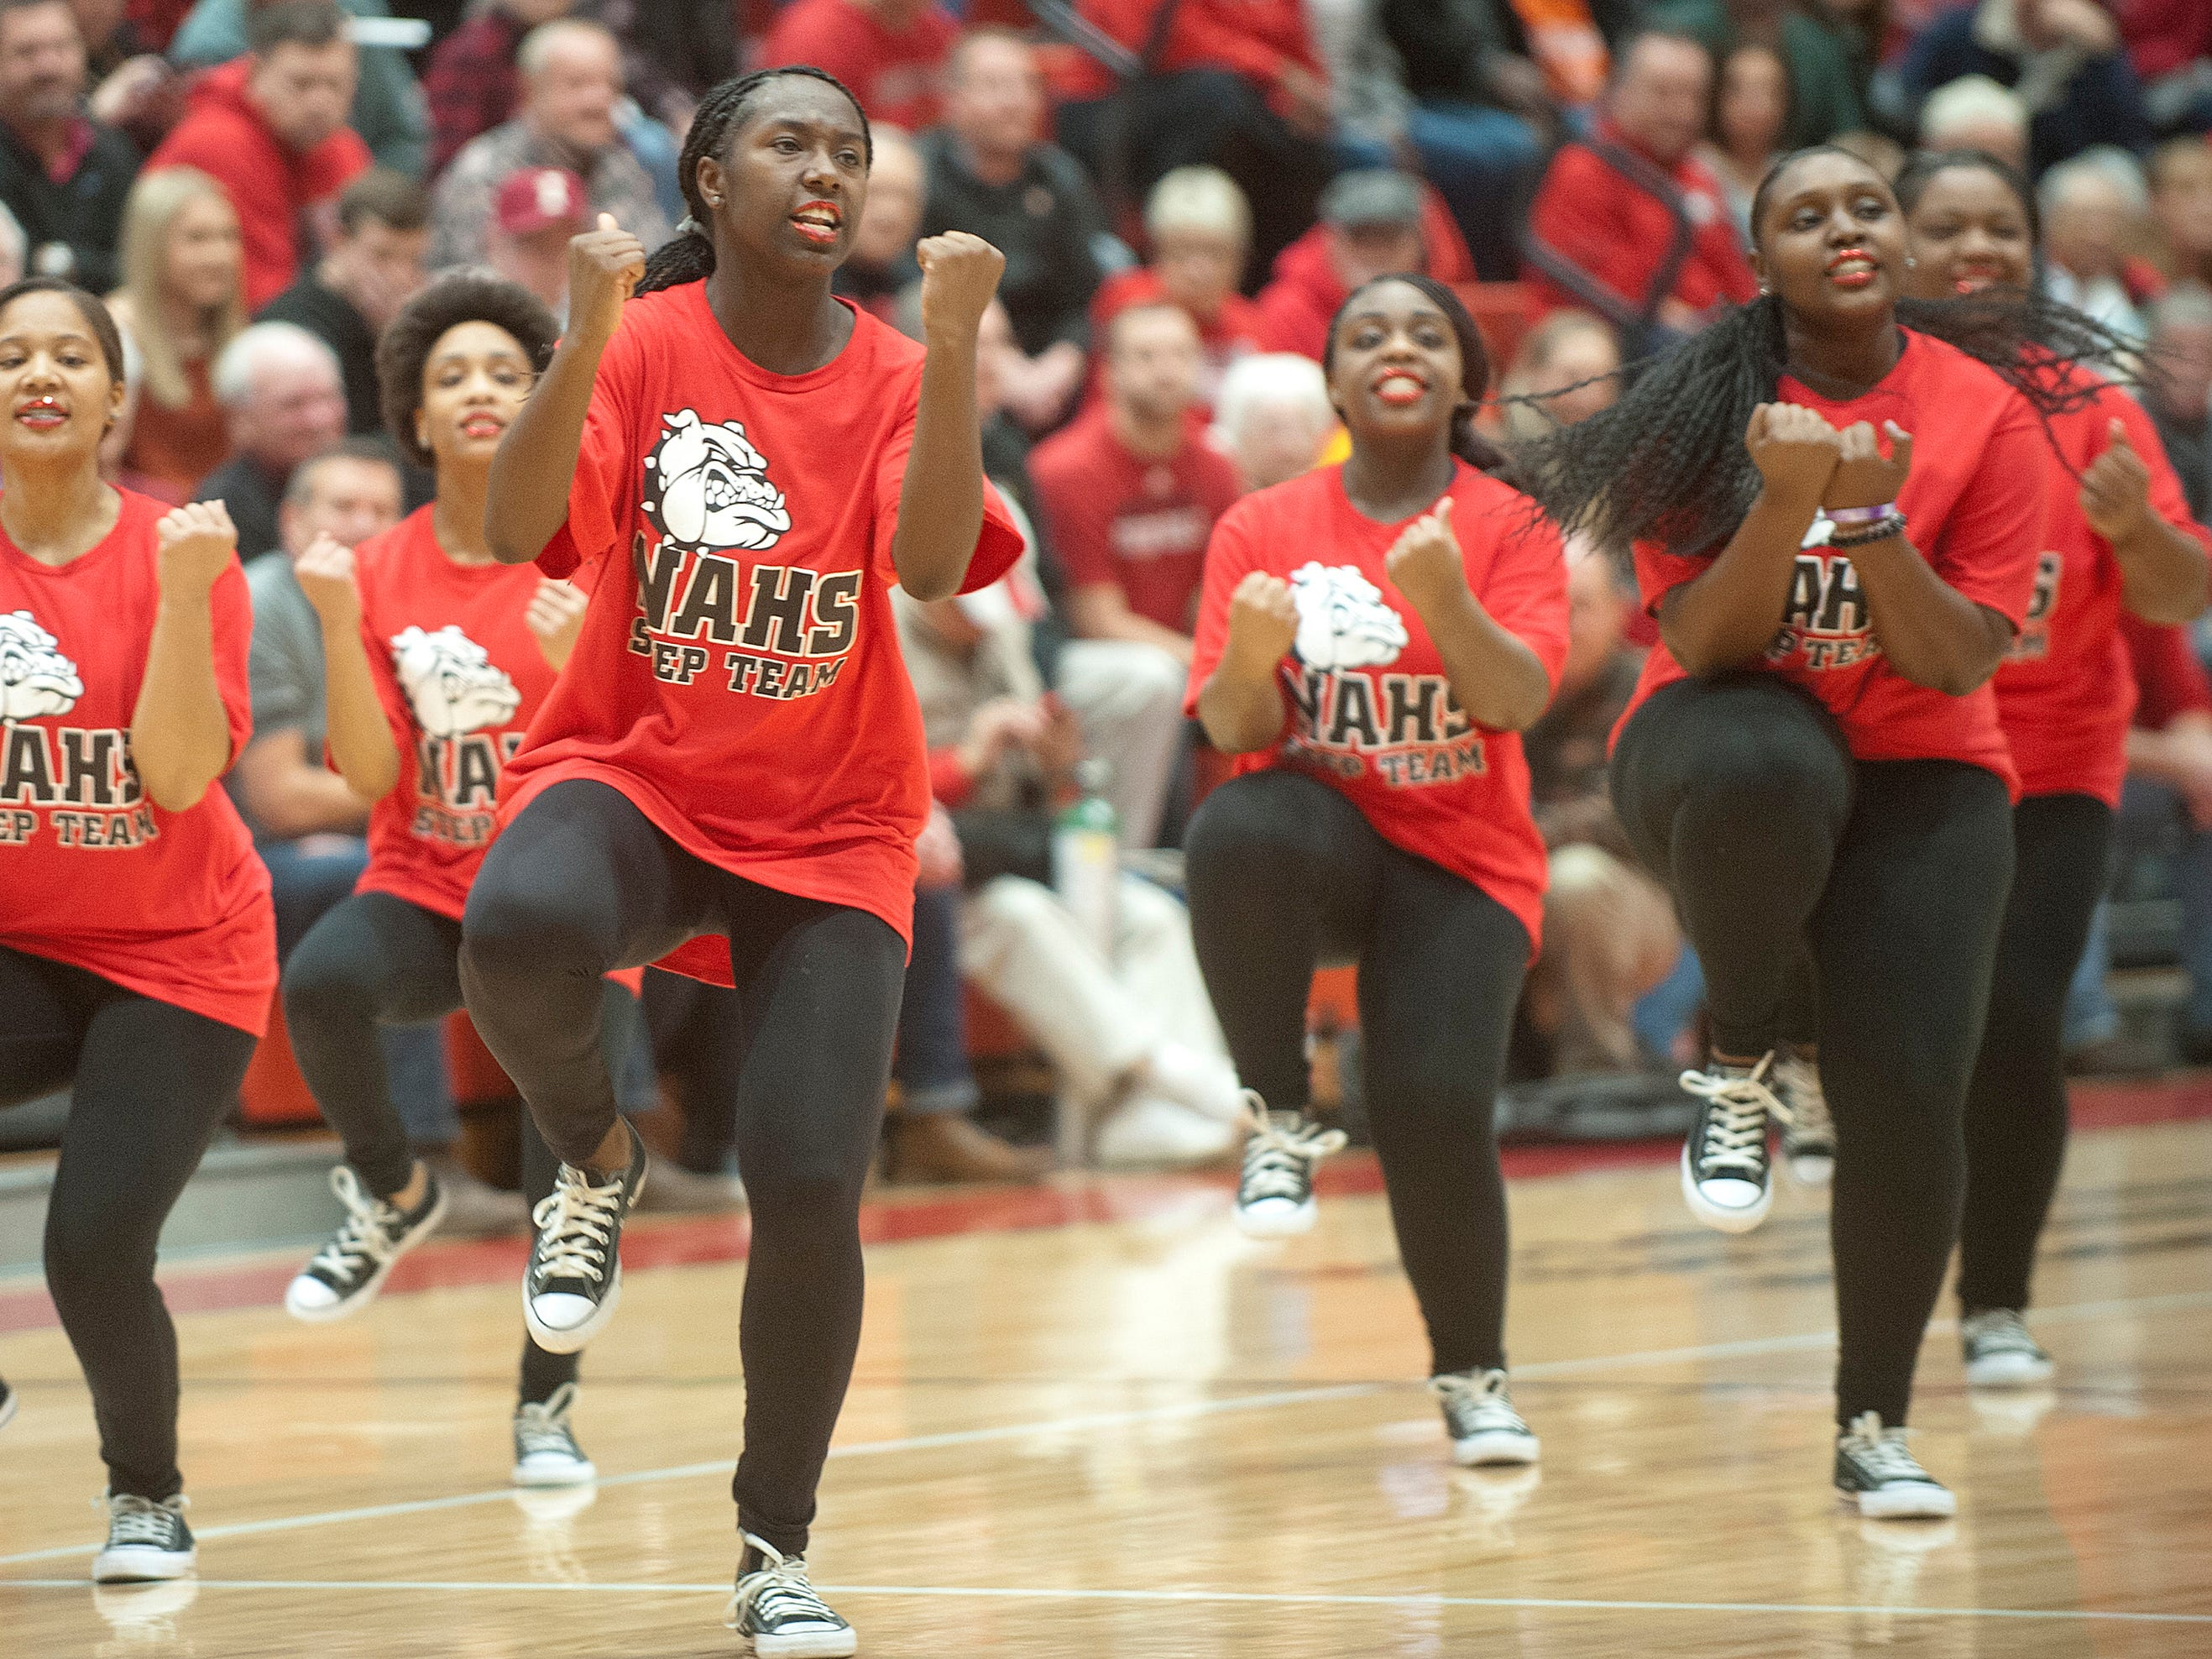 The New Albany step team performs at the half. 07 December 2018